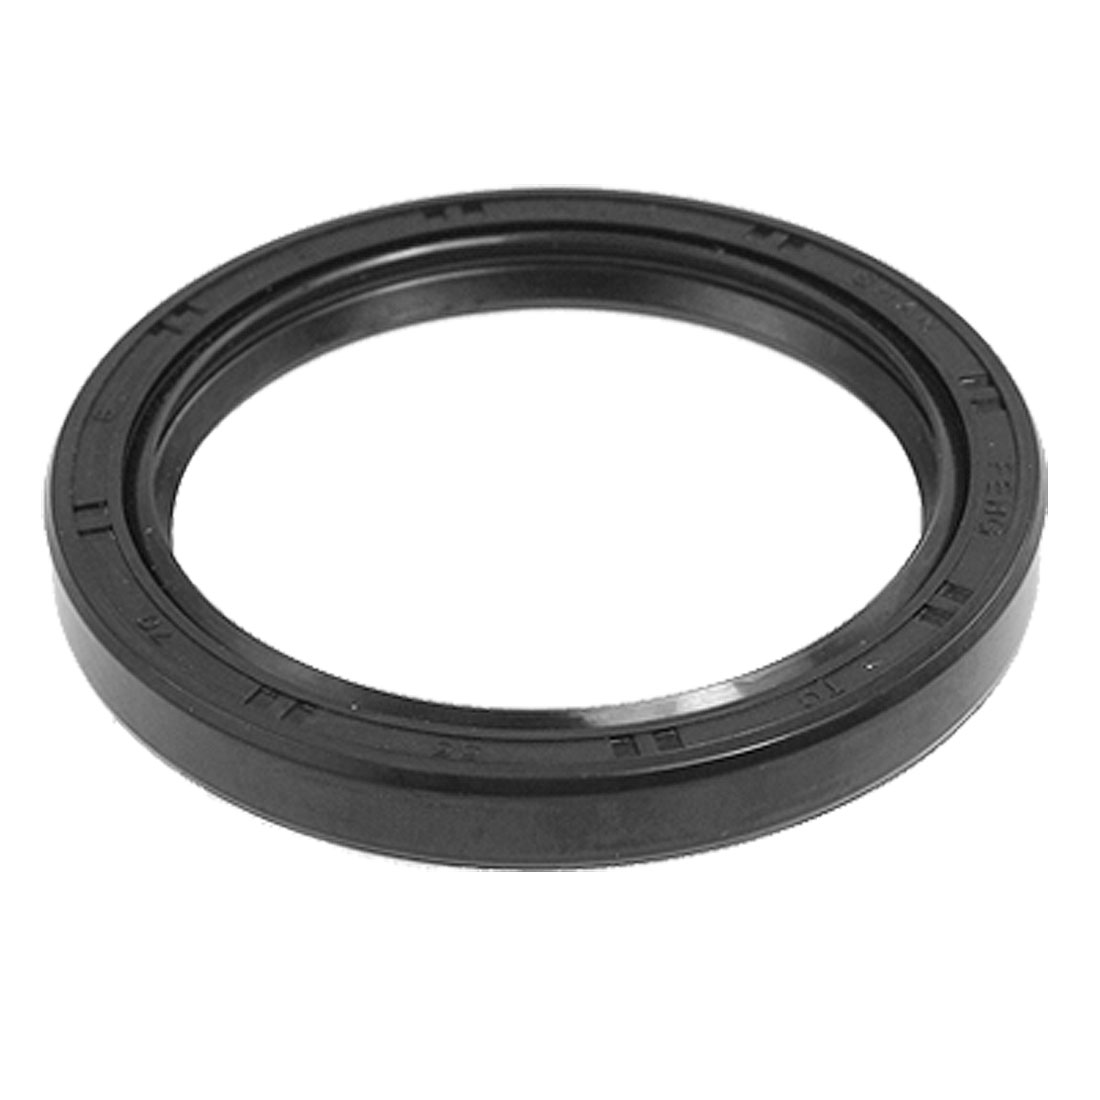 "Steel Spring Double Lip Rubber TC Oil Shaft Seal 2.16"" x 2.75"" x 0.3"""